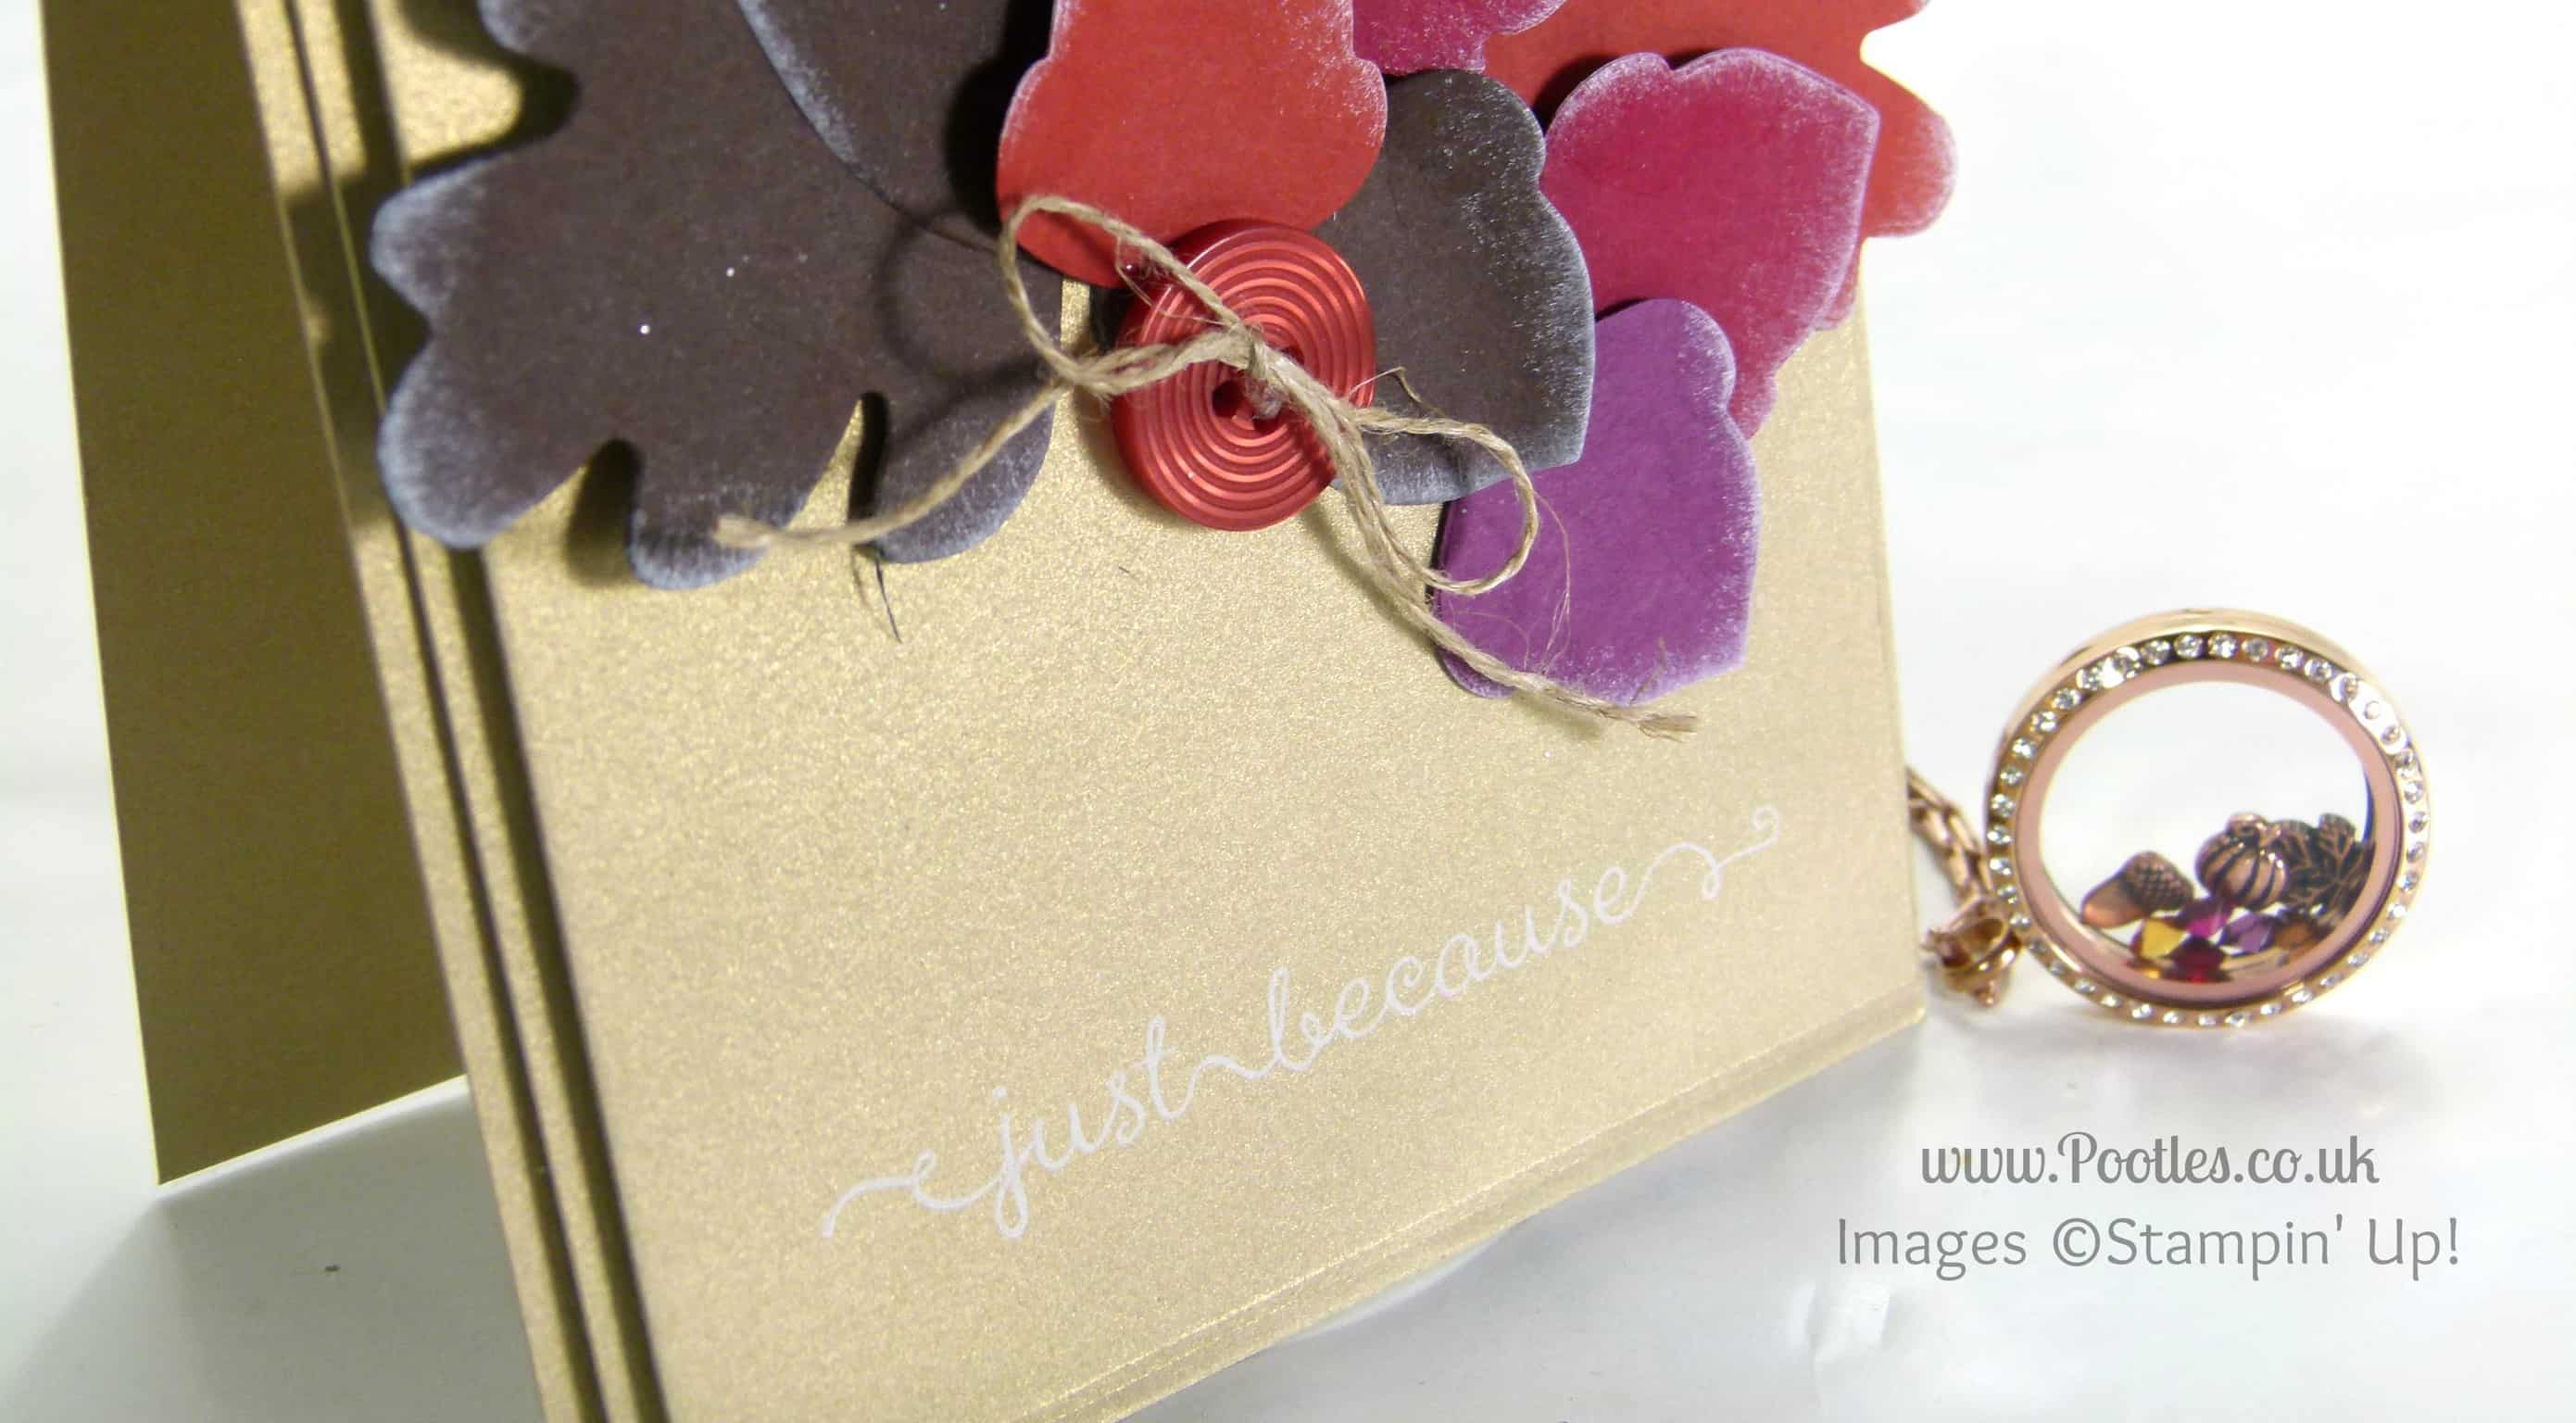 South Hill Designs & Stampin' Up! Sunday Autumn Showcase